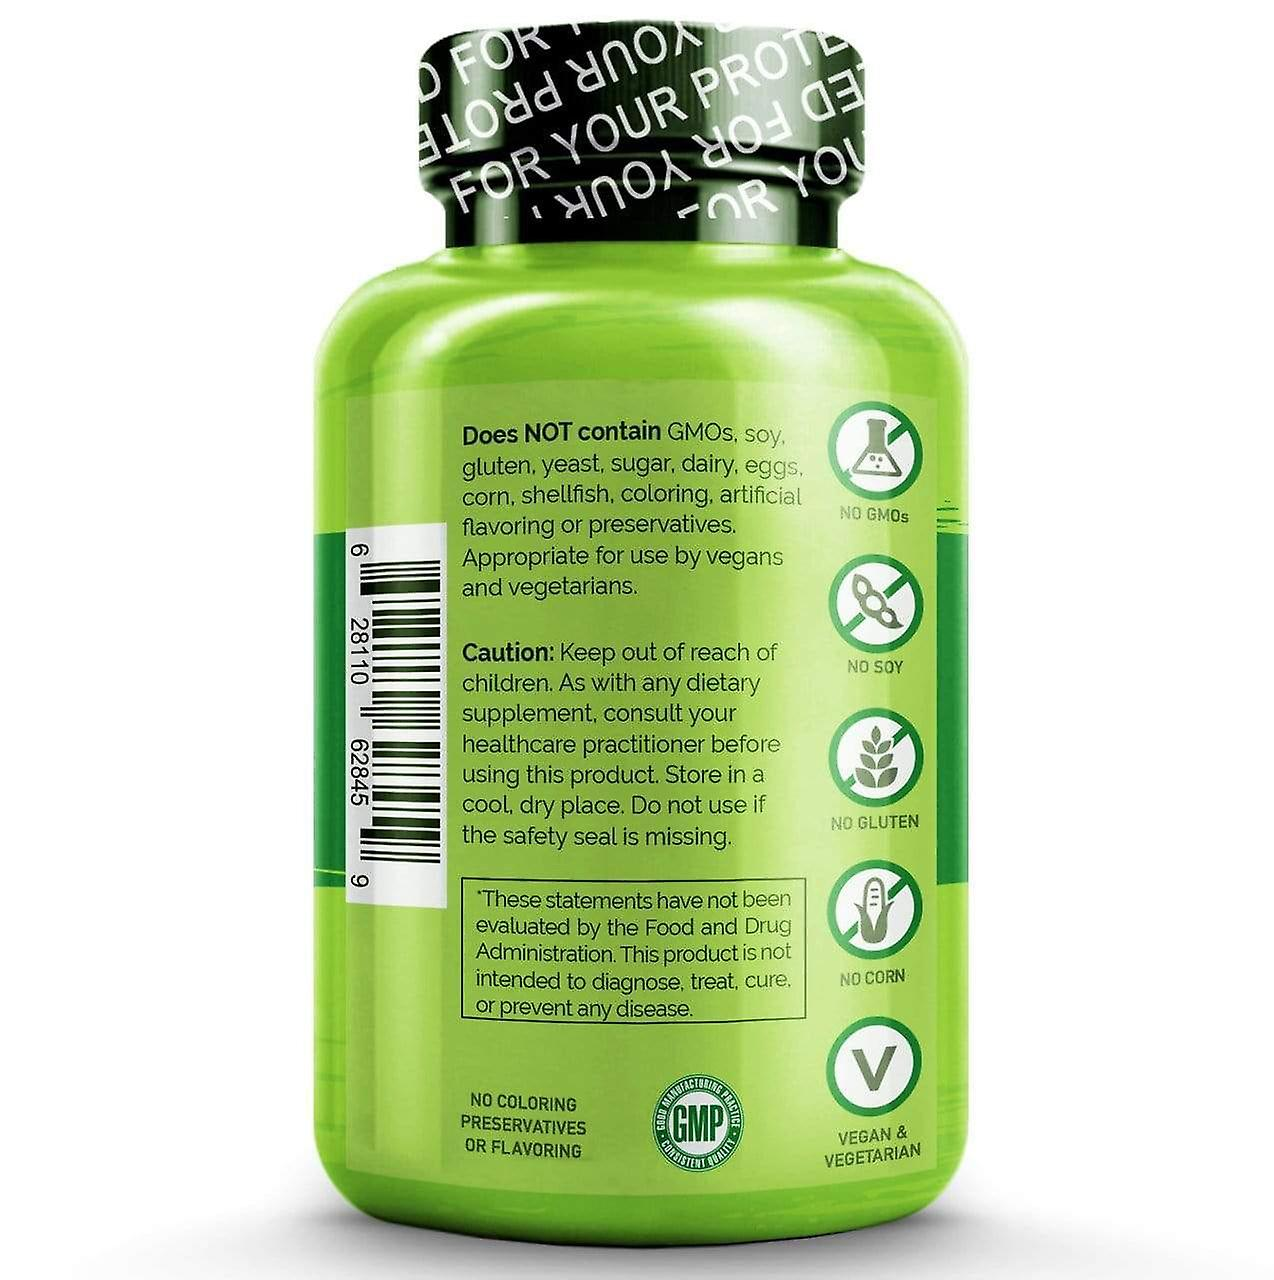 Vegan dha - omega 3 oil from algae with 800mg pure dha